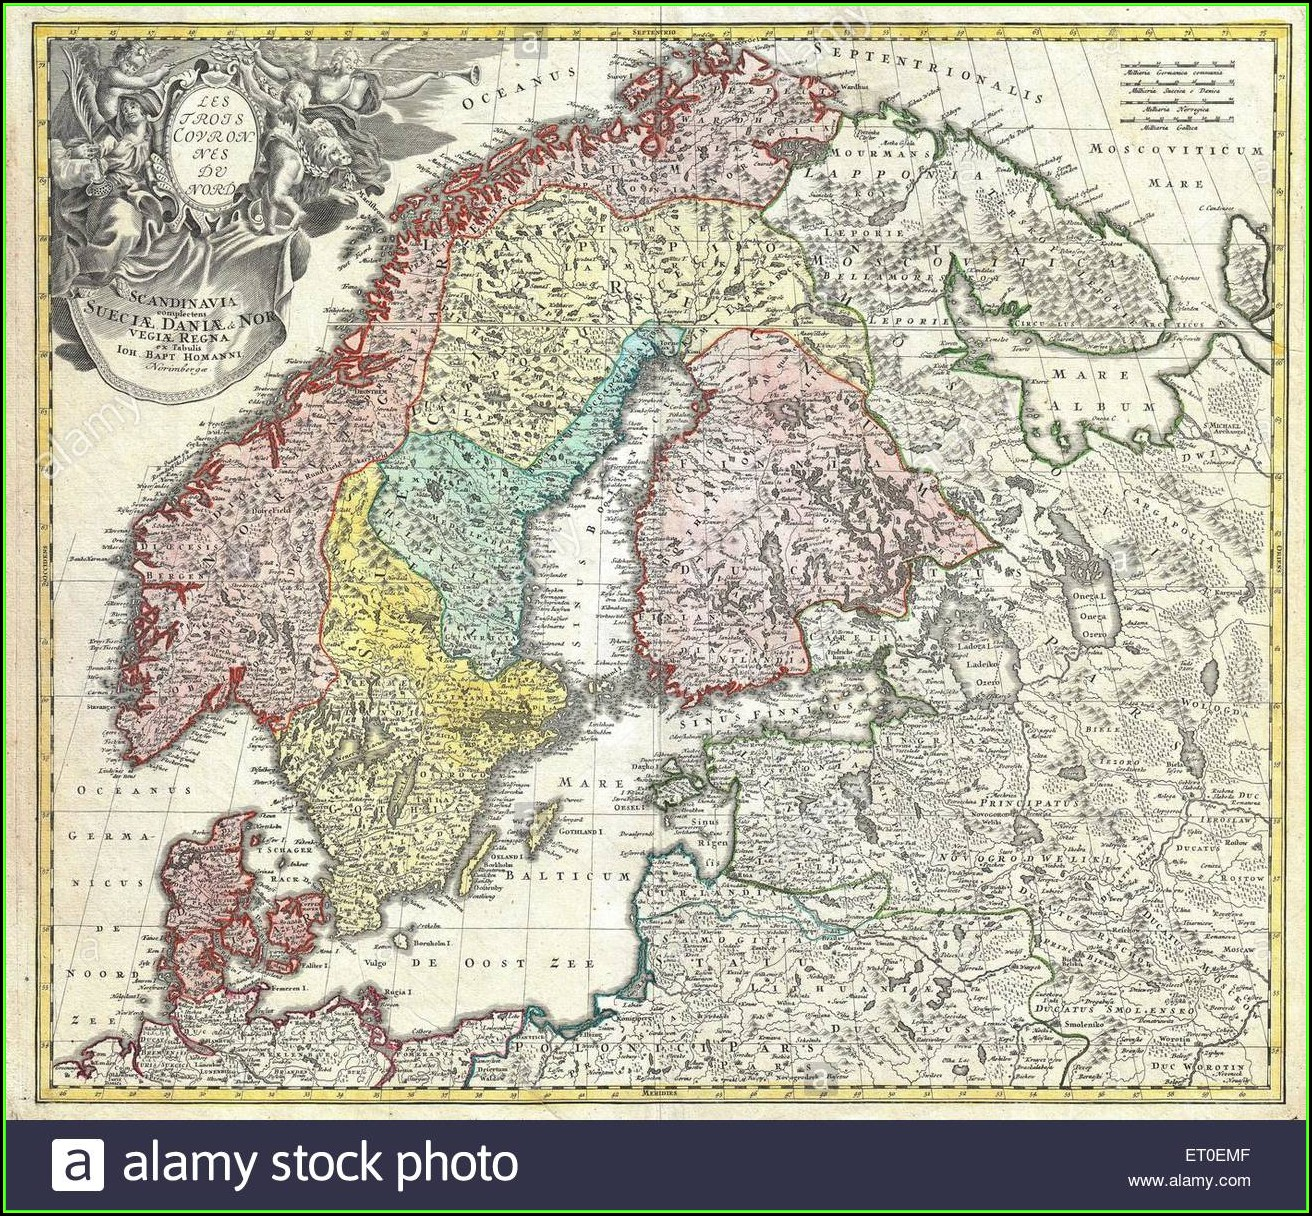 Old Fashioned Map Of Scandinavia